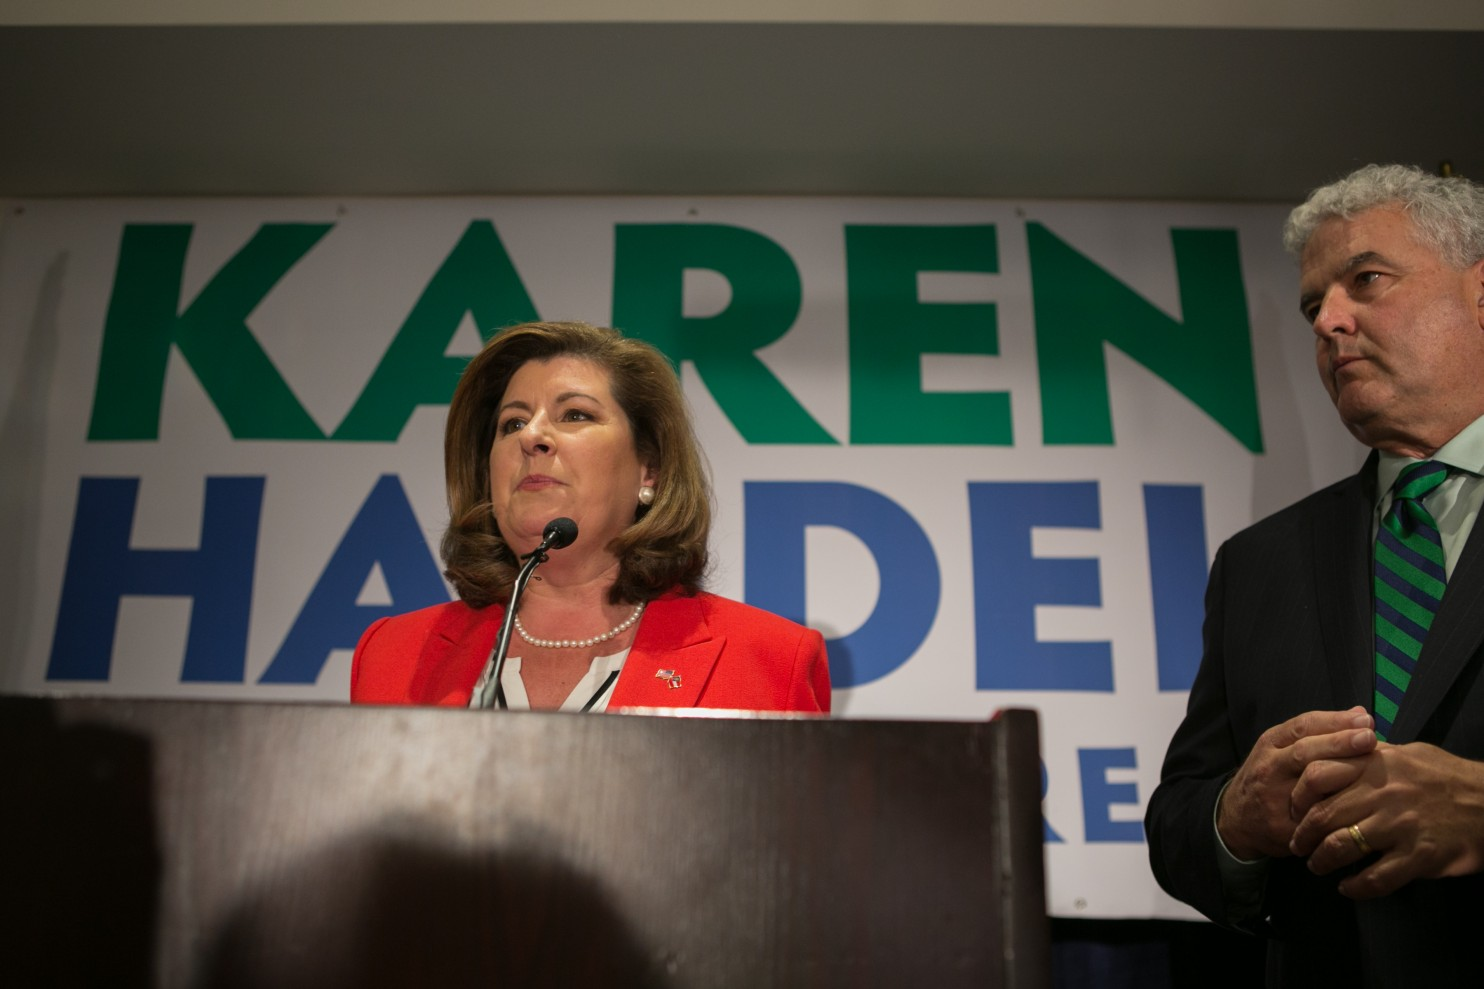 Congresswoman-elect Karen Handel is a Bigot